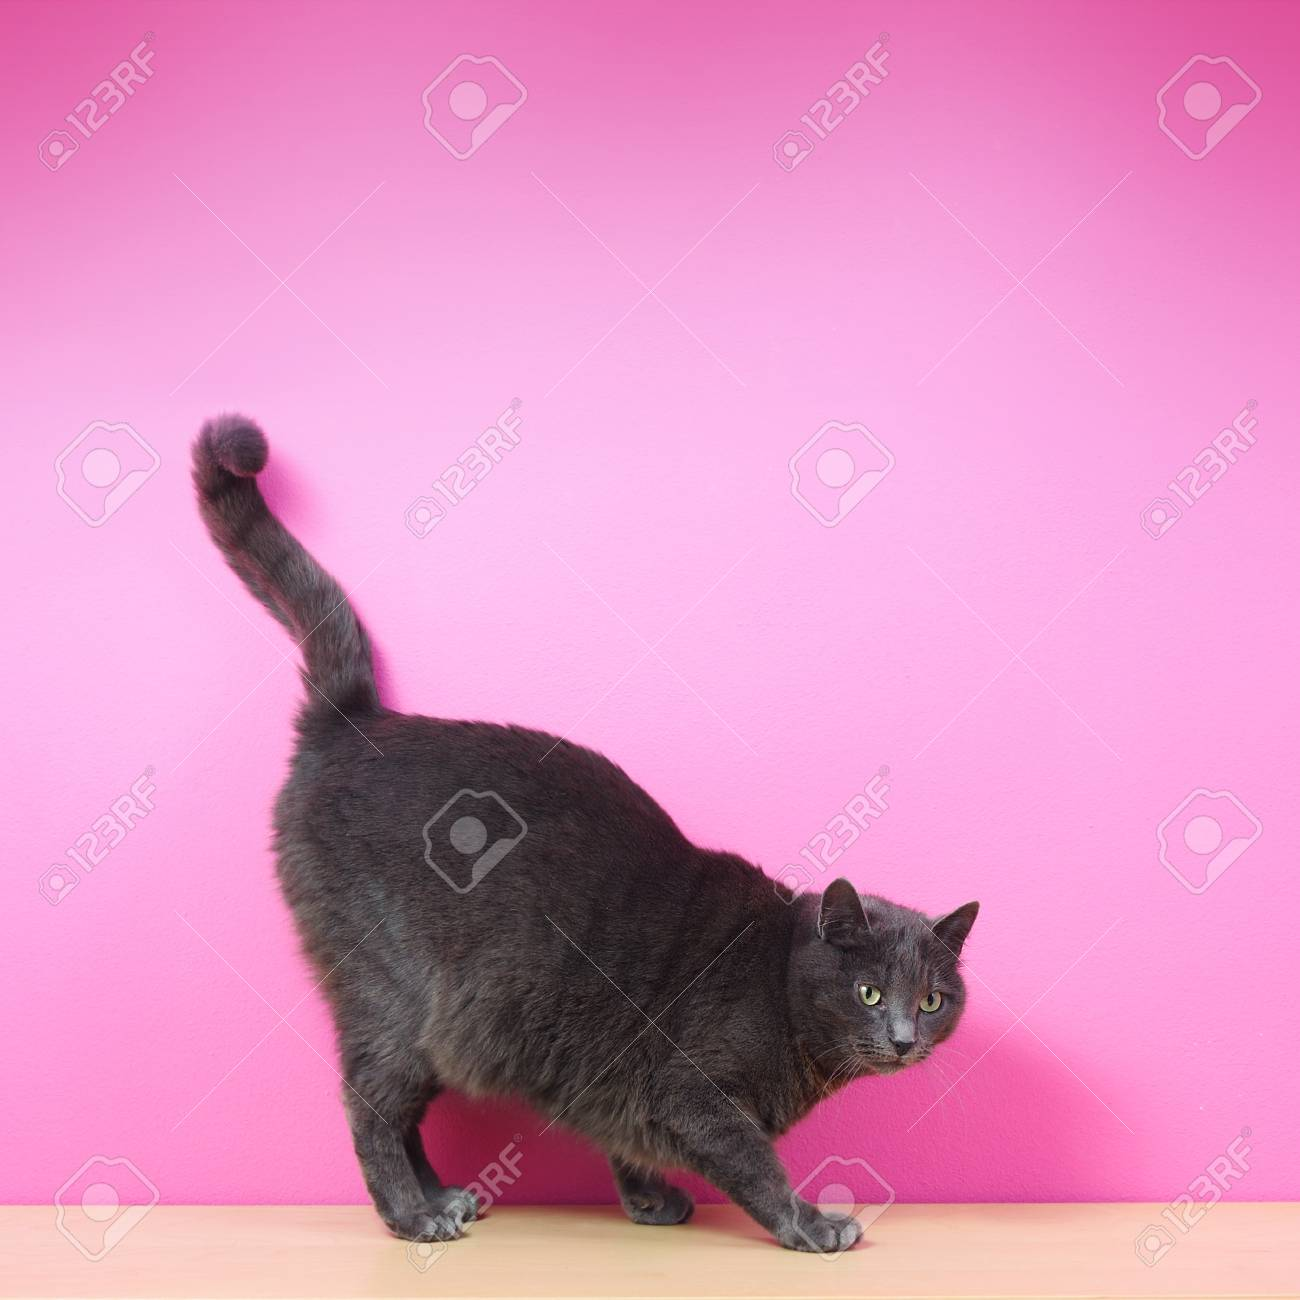 Domestic gray cat against pink background Stock Photo - 14657782